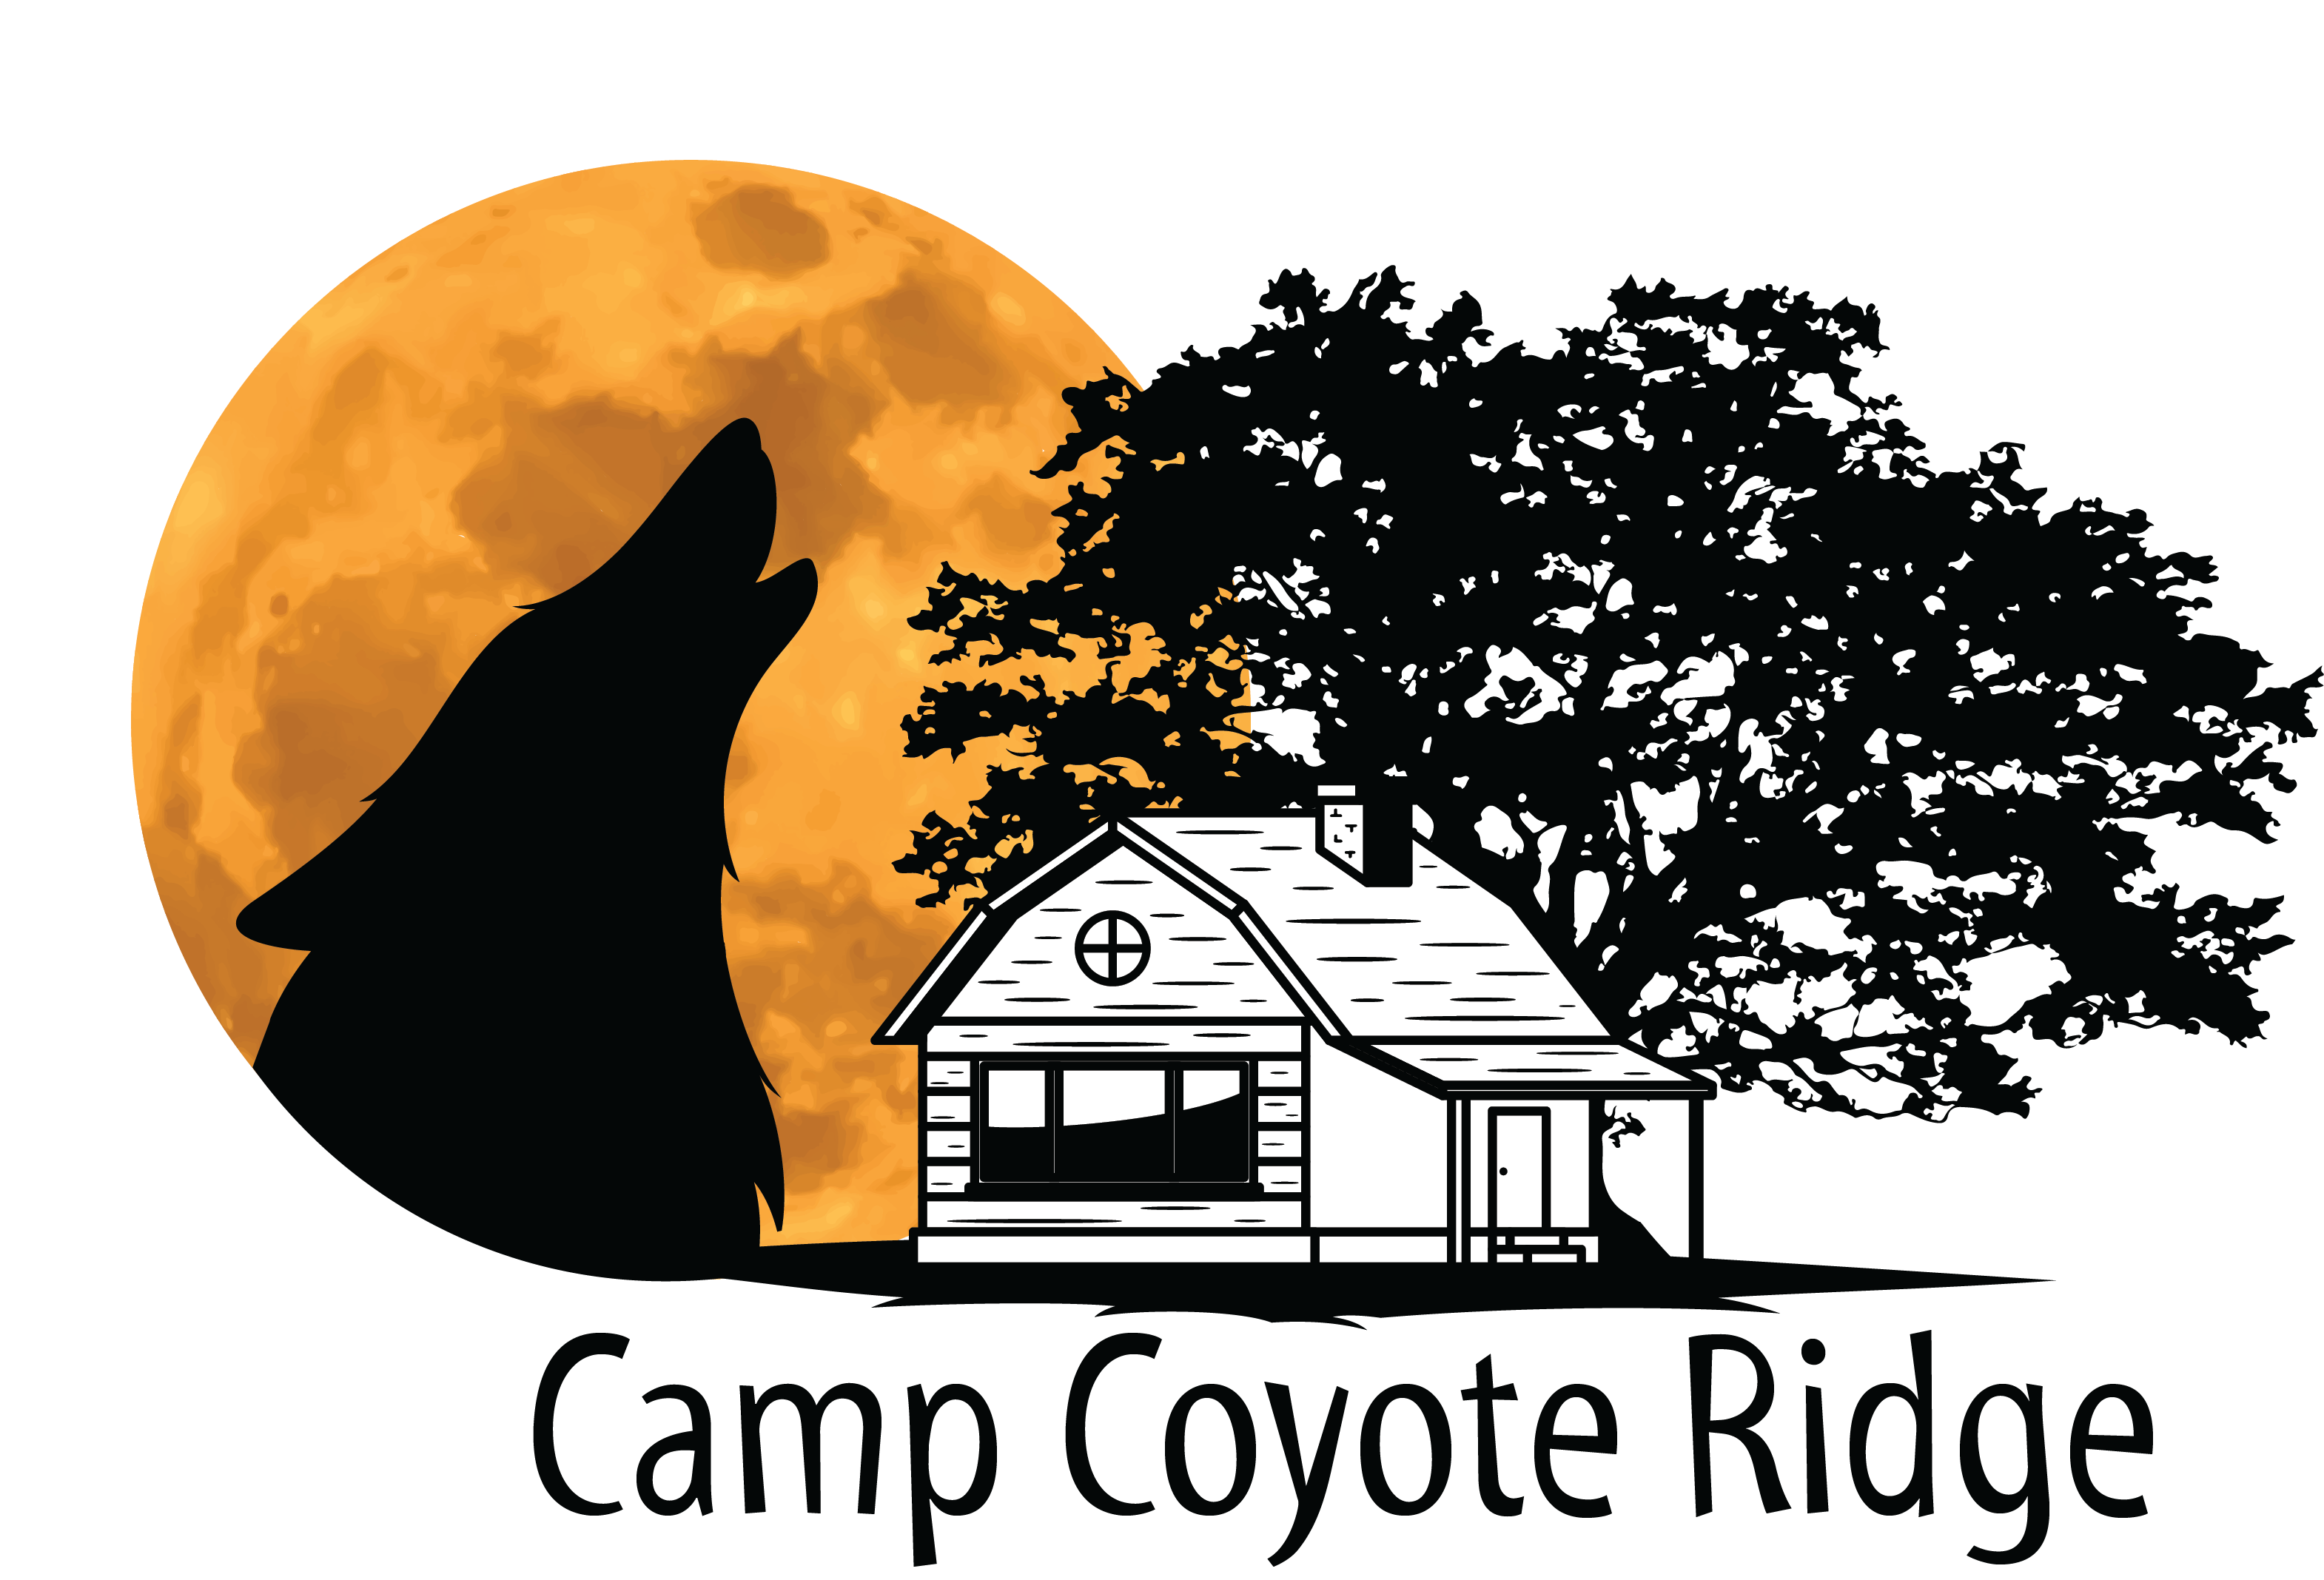 Camp Coyote